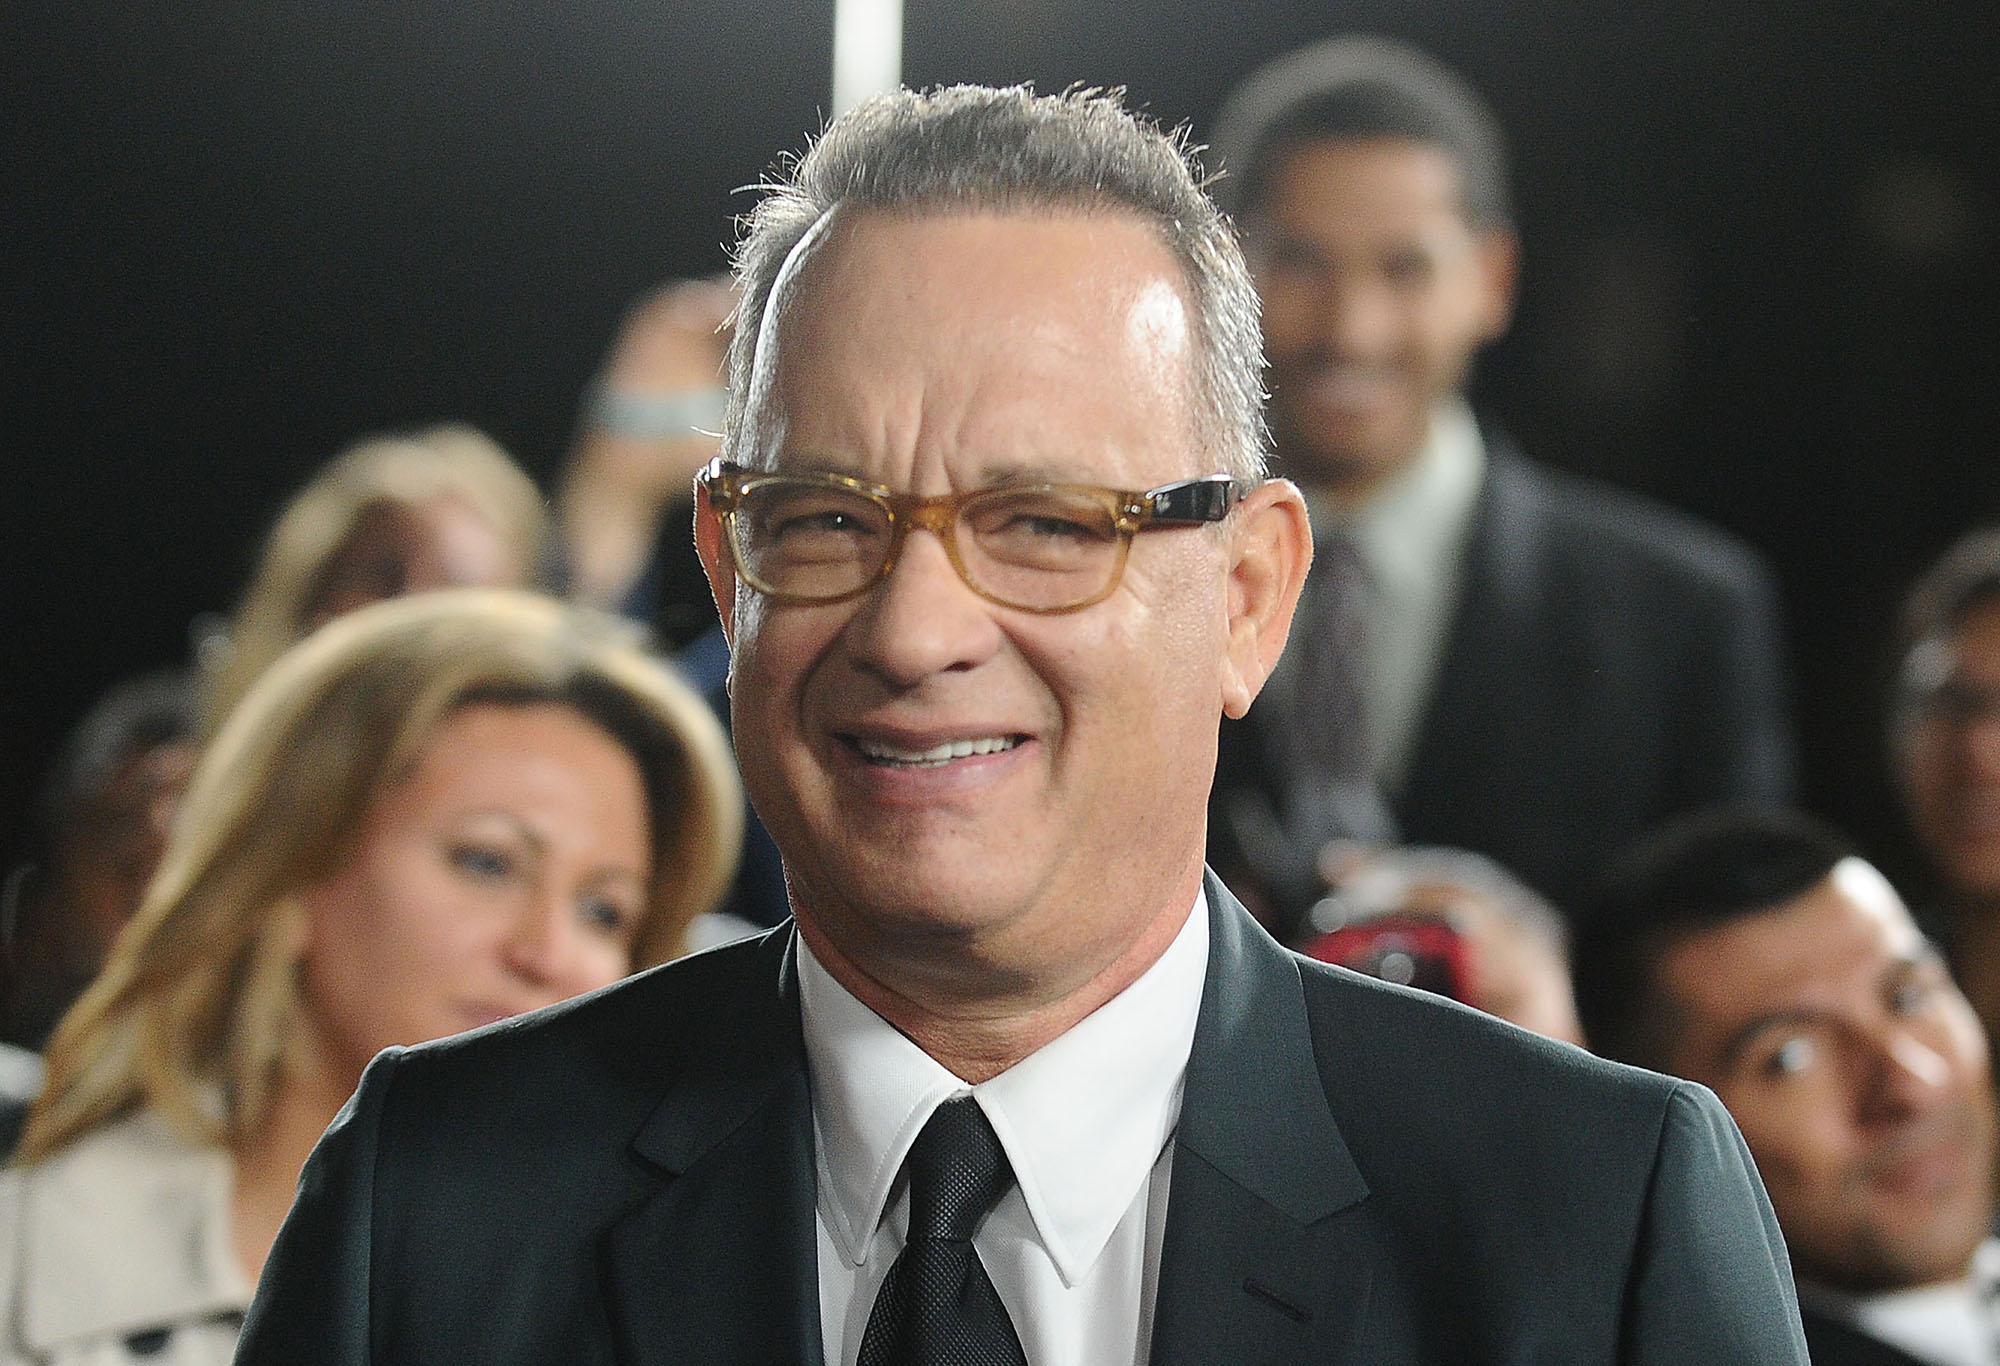 Tom Hanks attends a screening of  Inferno  at DGA Theater on October 25, 2016 in Los Angeles, California.  (Photo by Jason LaVeris/FilmMagic)